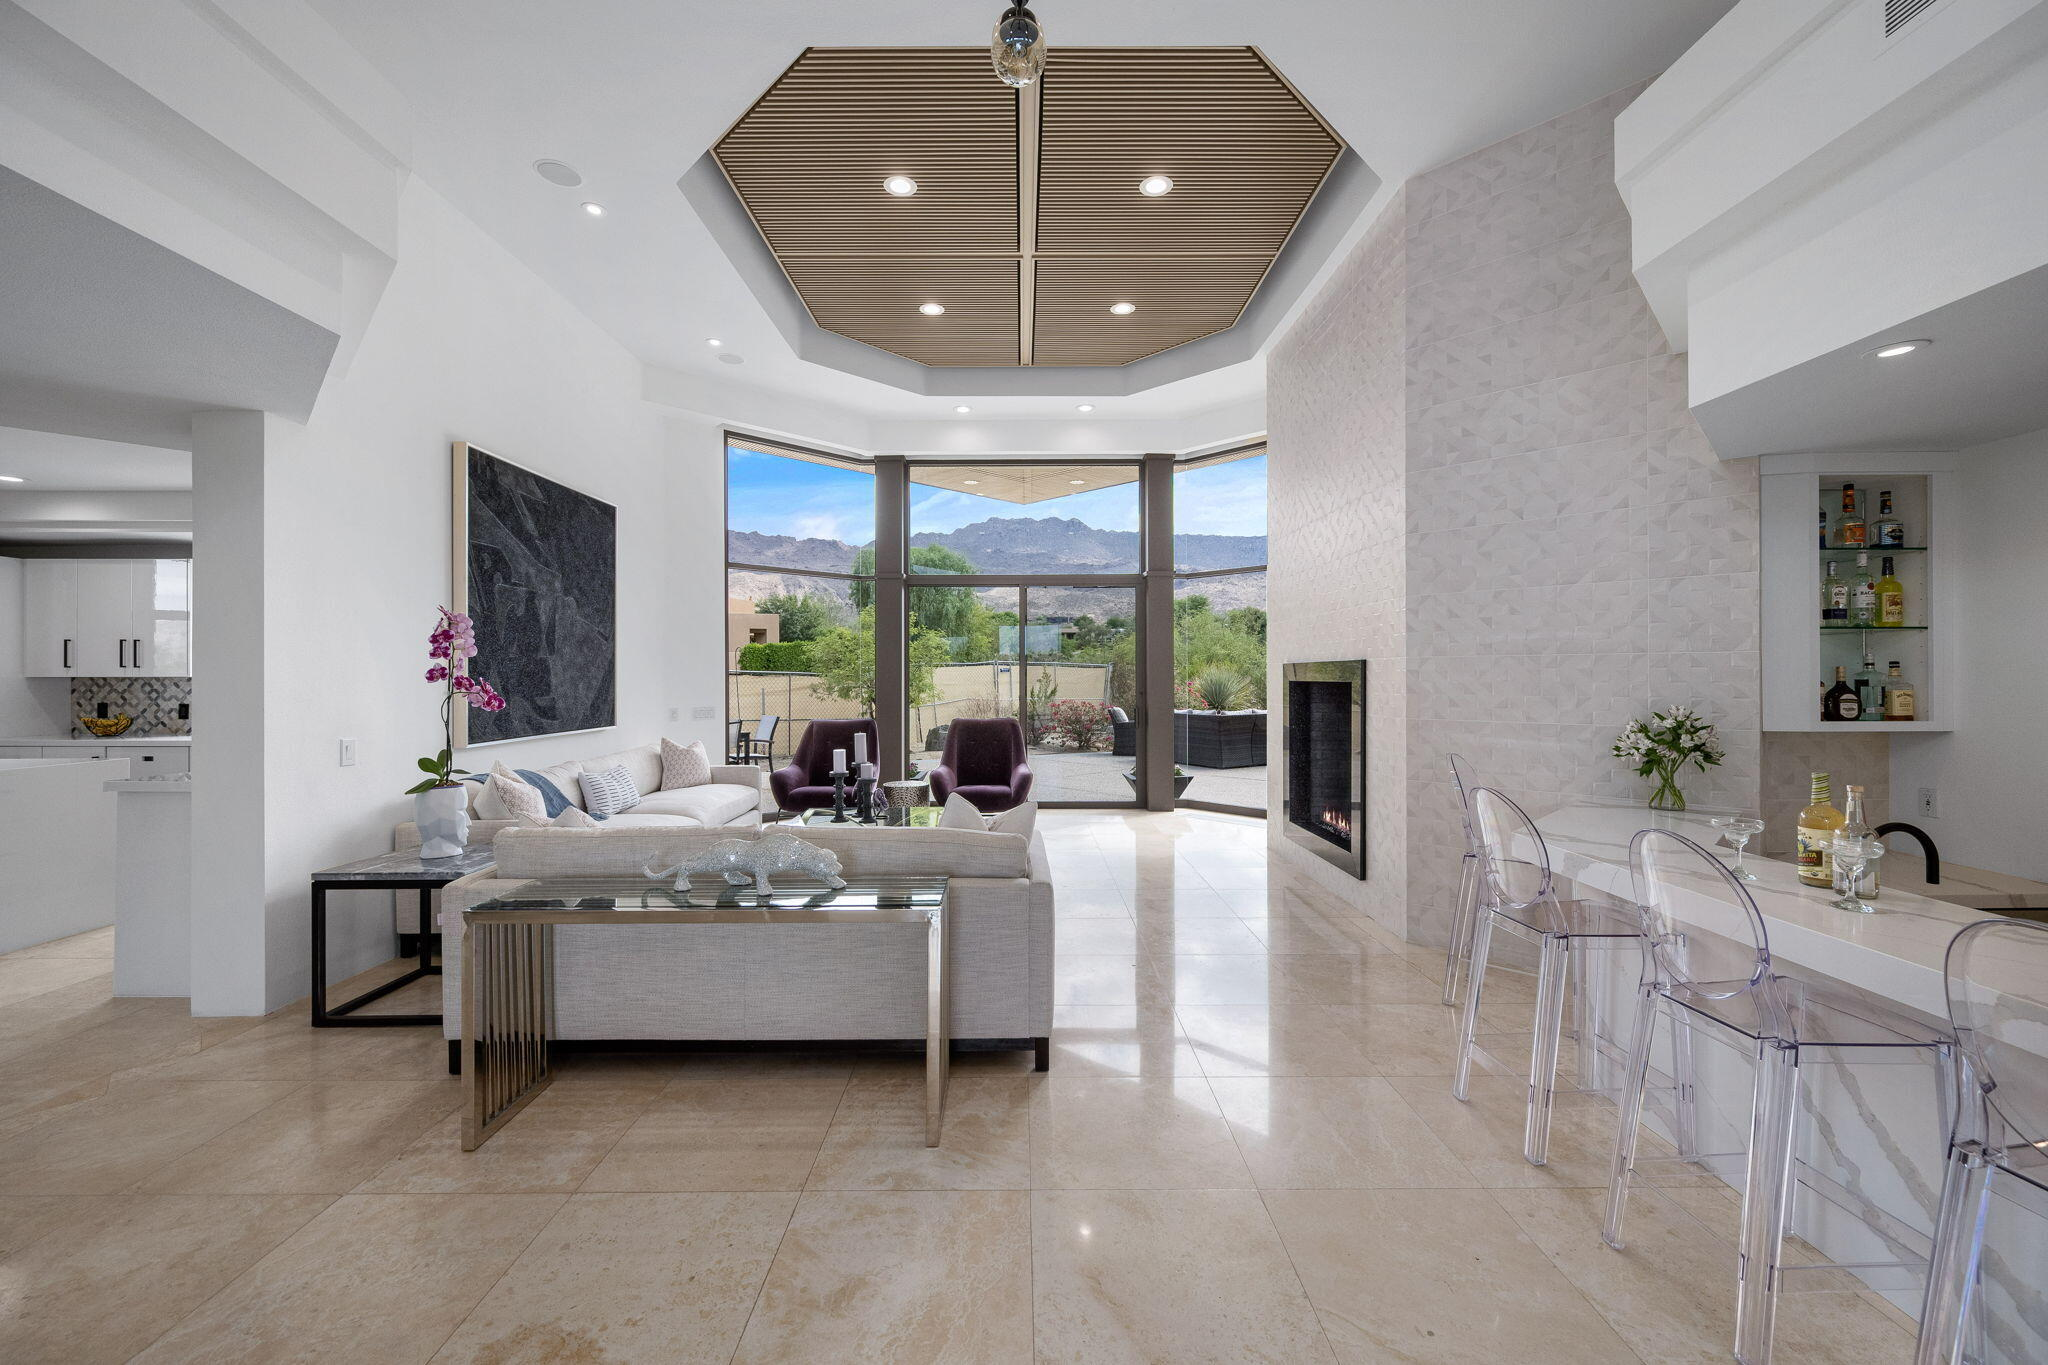 Located within the exclusive Bighorn Golf Club community, this newly remodeled home offers exquisite design, an open floor plan, and spectacular golf course and mountain views. Inside, enjoy a family room, dining room, living room with a sunken bar, a glass-enclosed wine wall, and a kitchen with crisp white nano glass countertops and modern appliances. The luxurious primary suite features a fireplace, sitting area, an elegant bathroom with a freestanding tub, and a walk-in closet. The additional two other bedroom suites offer their own design details and comforts. An attached casita includes a separate entrance and the backyard boasts a newly renovated pool, spa, an outdoor barbecue, and ample entertaining space that looks towards the 18th hole in Bighorn's Mountain Course.